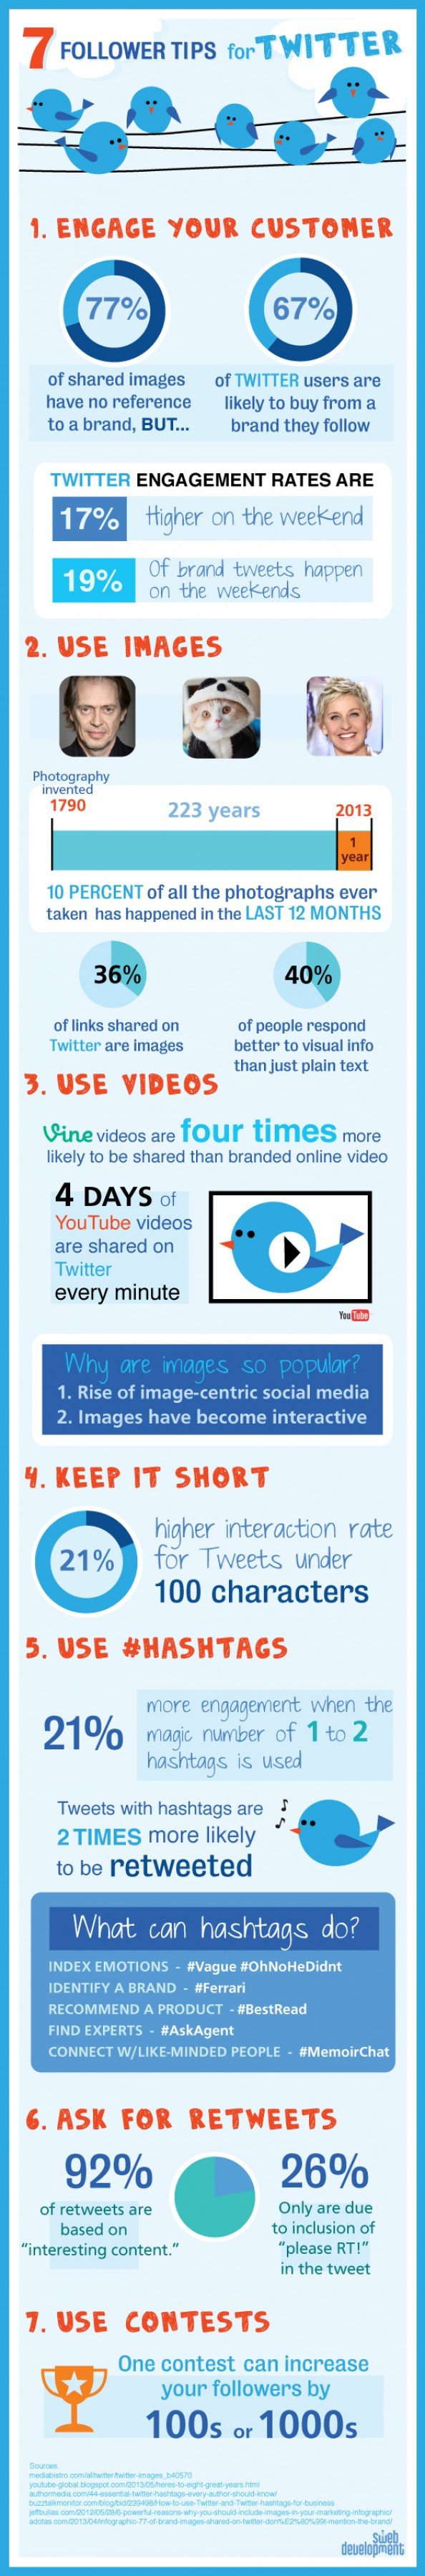 Tips for #Twitter (Increase Retweets and Followers)